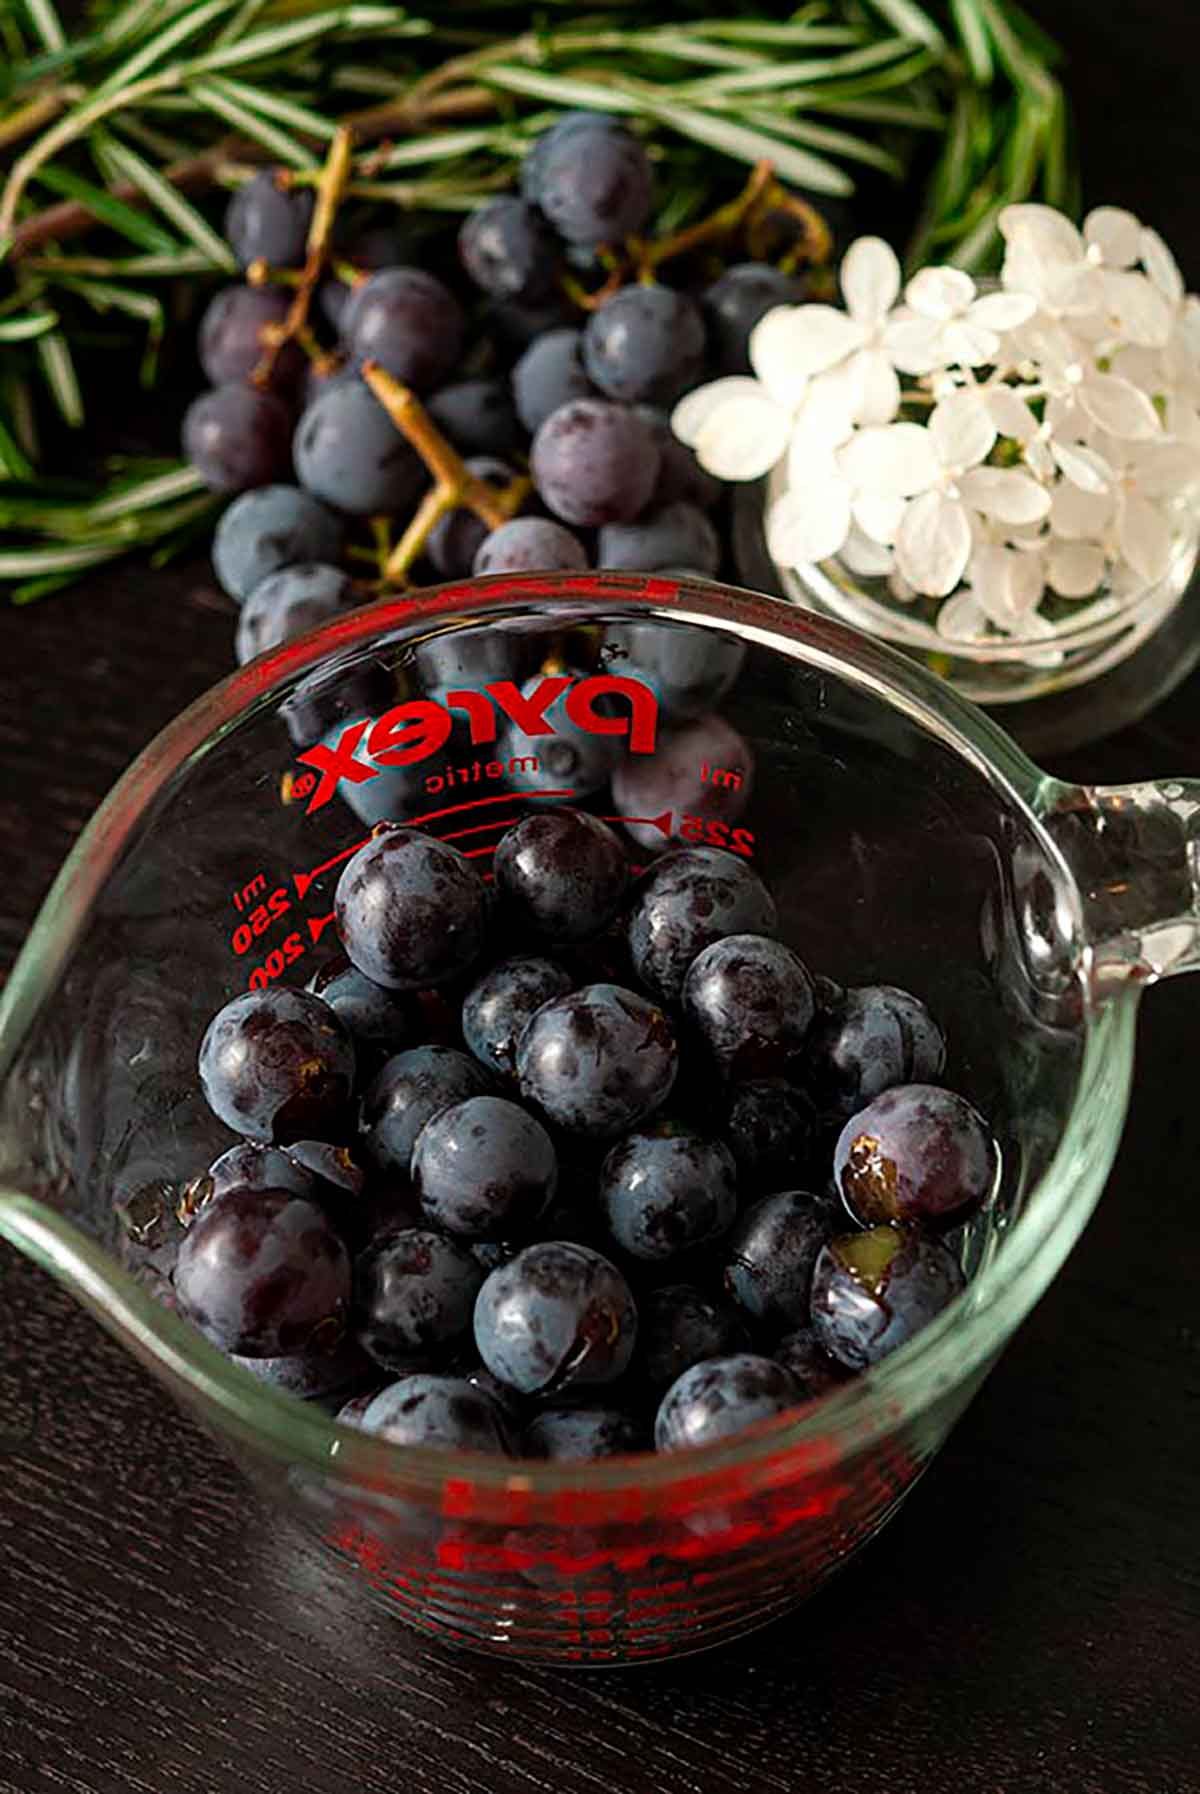 A measuring cup full of grapes beside a small bowl of flowers on a table.